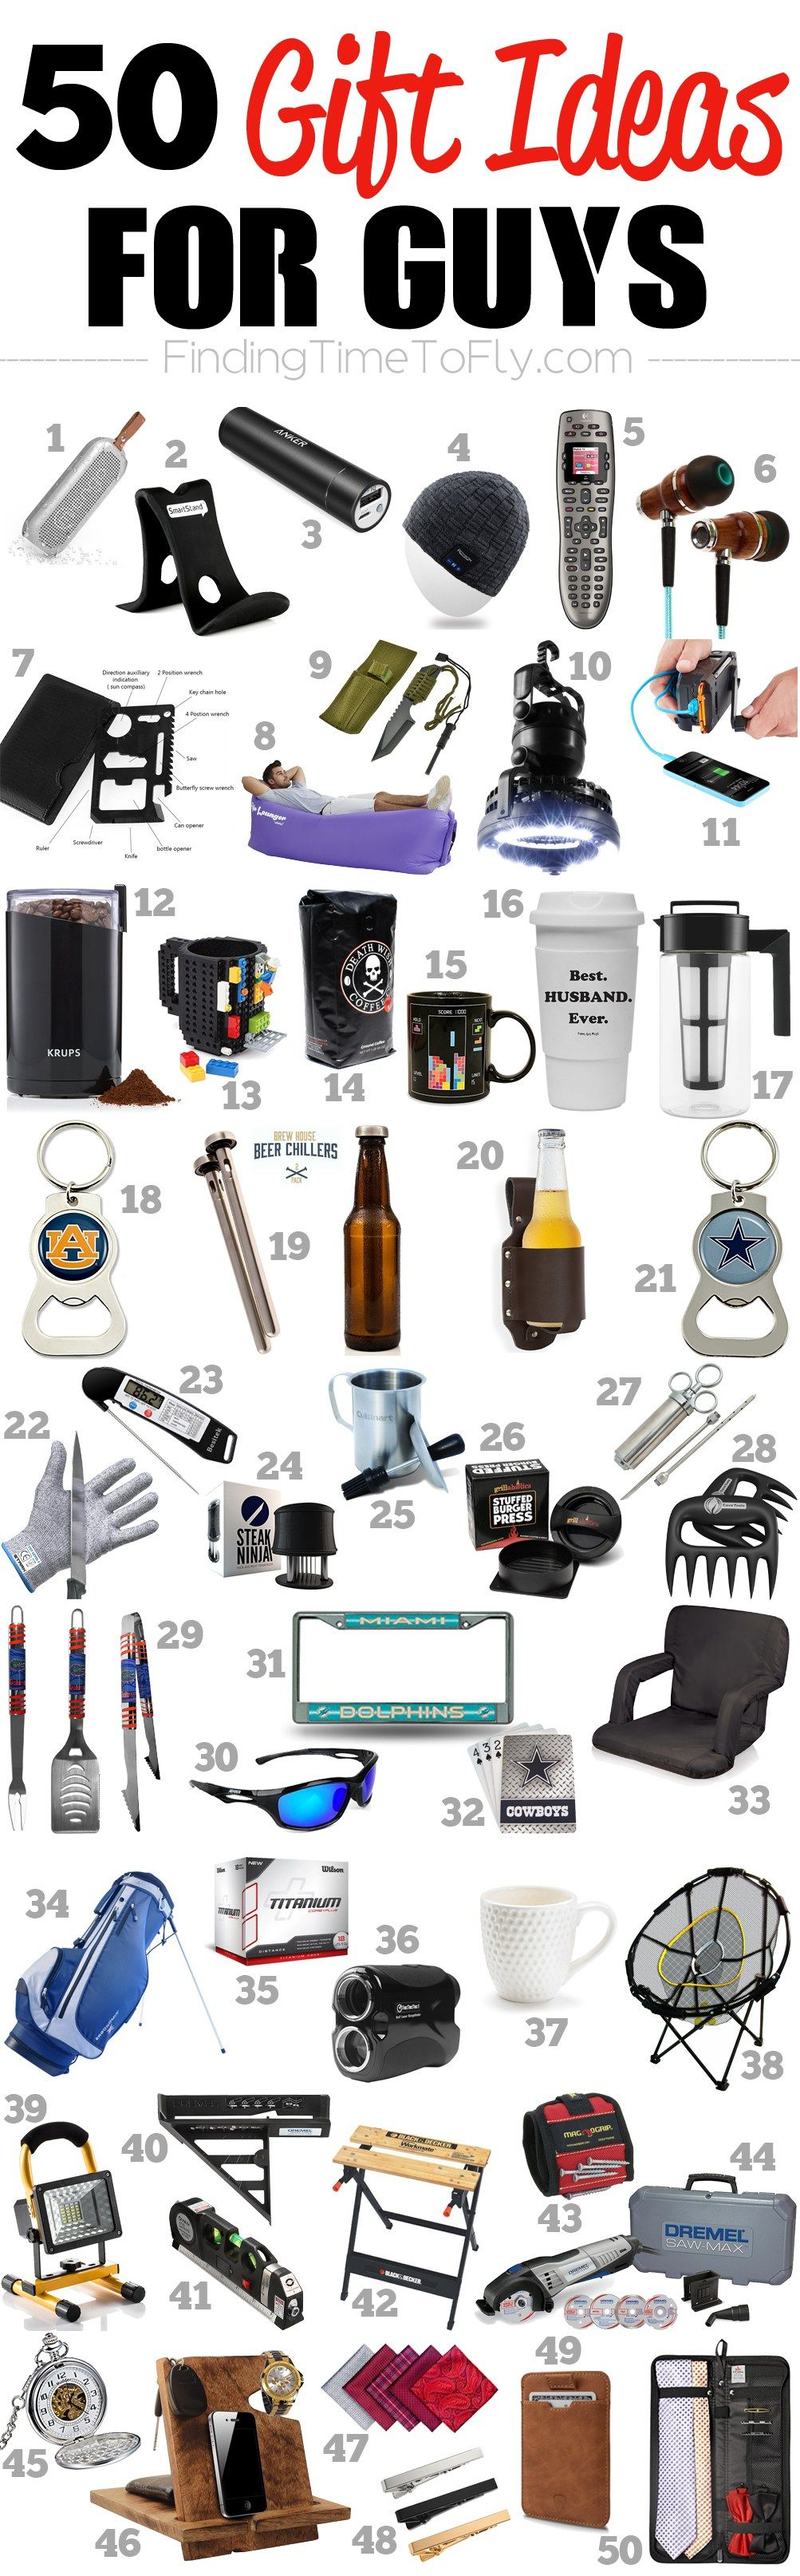 Saving This List Of 50 Gifts For Guys A Great Gift Ideas Men To Shop Birthdays Valentines Day Fathers Graduation Or Christmas